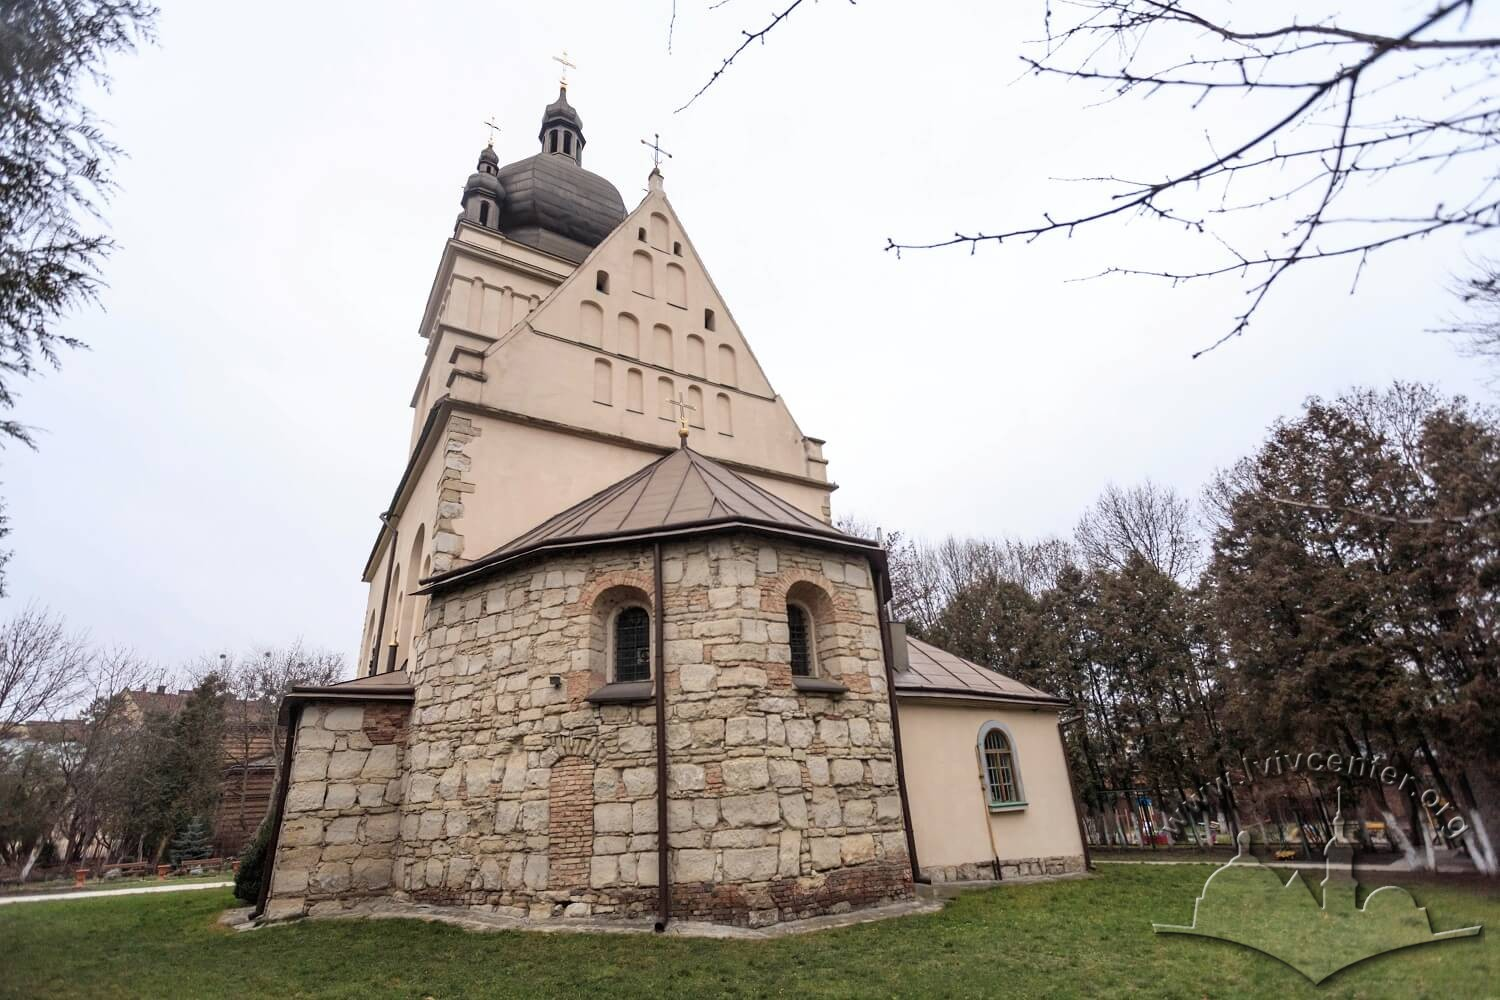 Vul. Khmelnytskoho, 77. Apse/Photo courtesy of Nazarii Parkhomyk, 2015